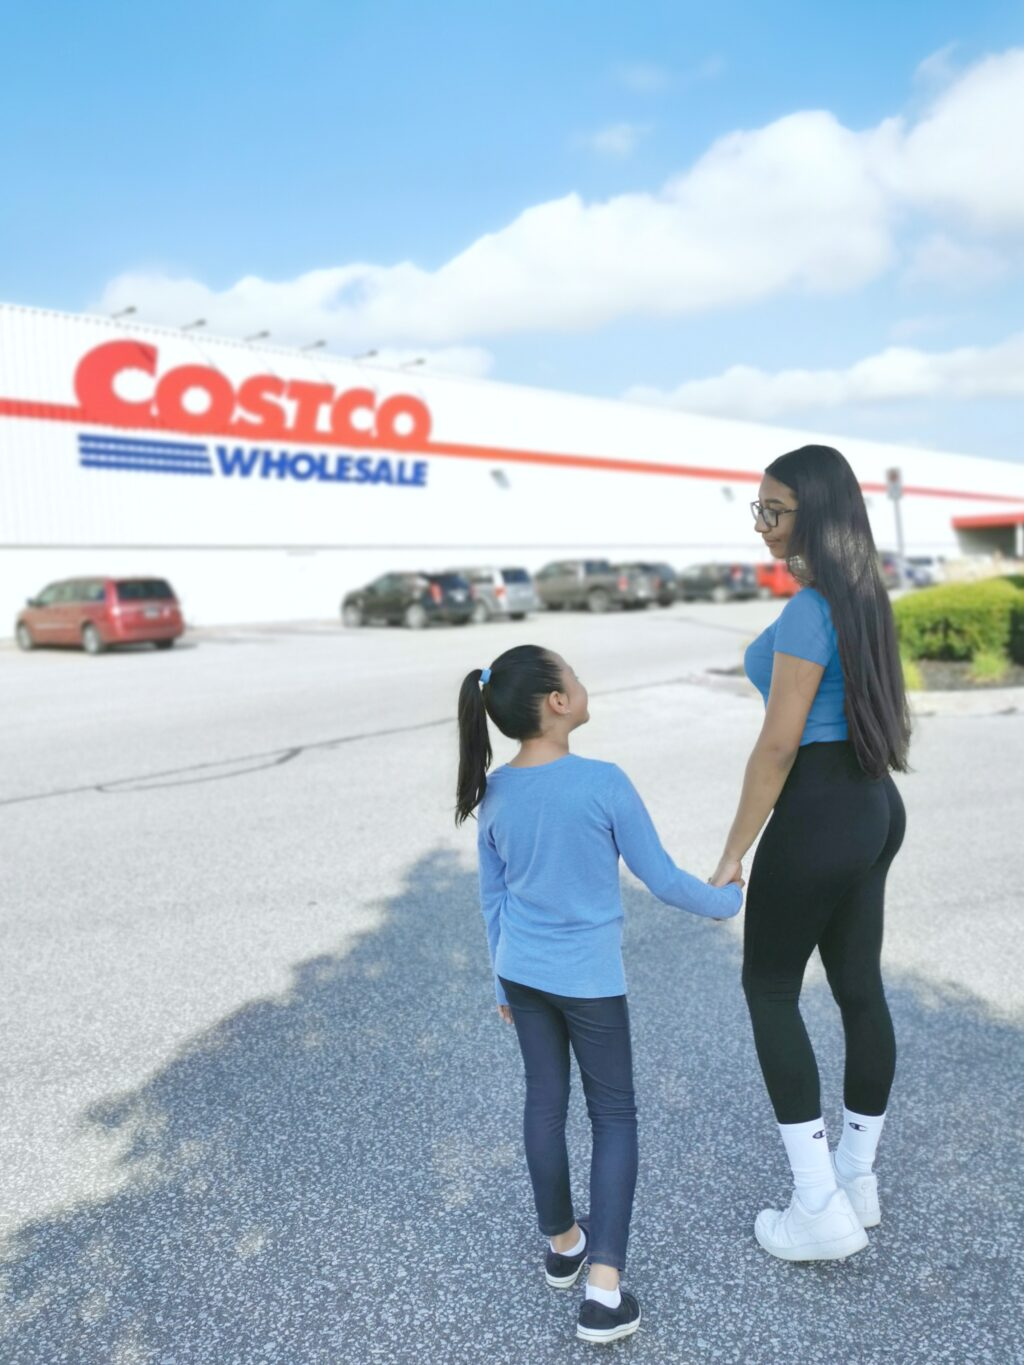 Gabby and Mimi walking into Costco Wholesale, they hold hands and smile.